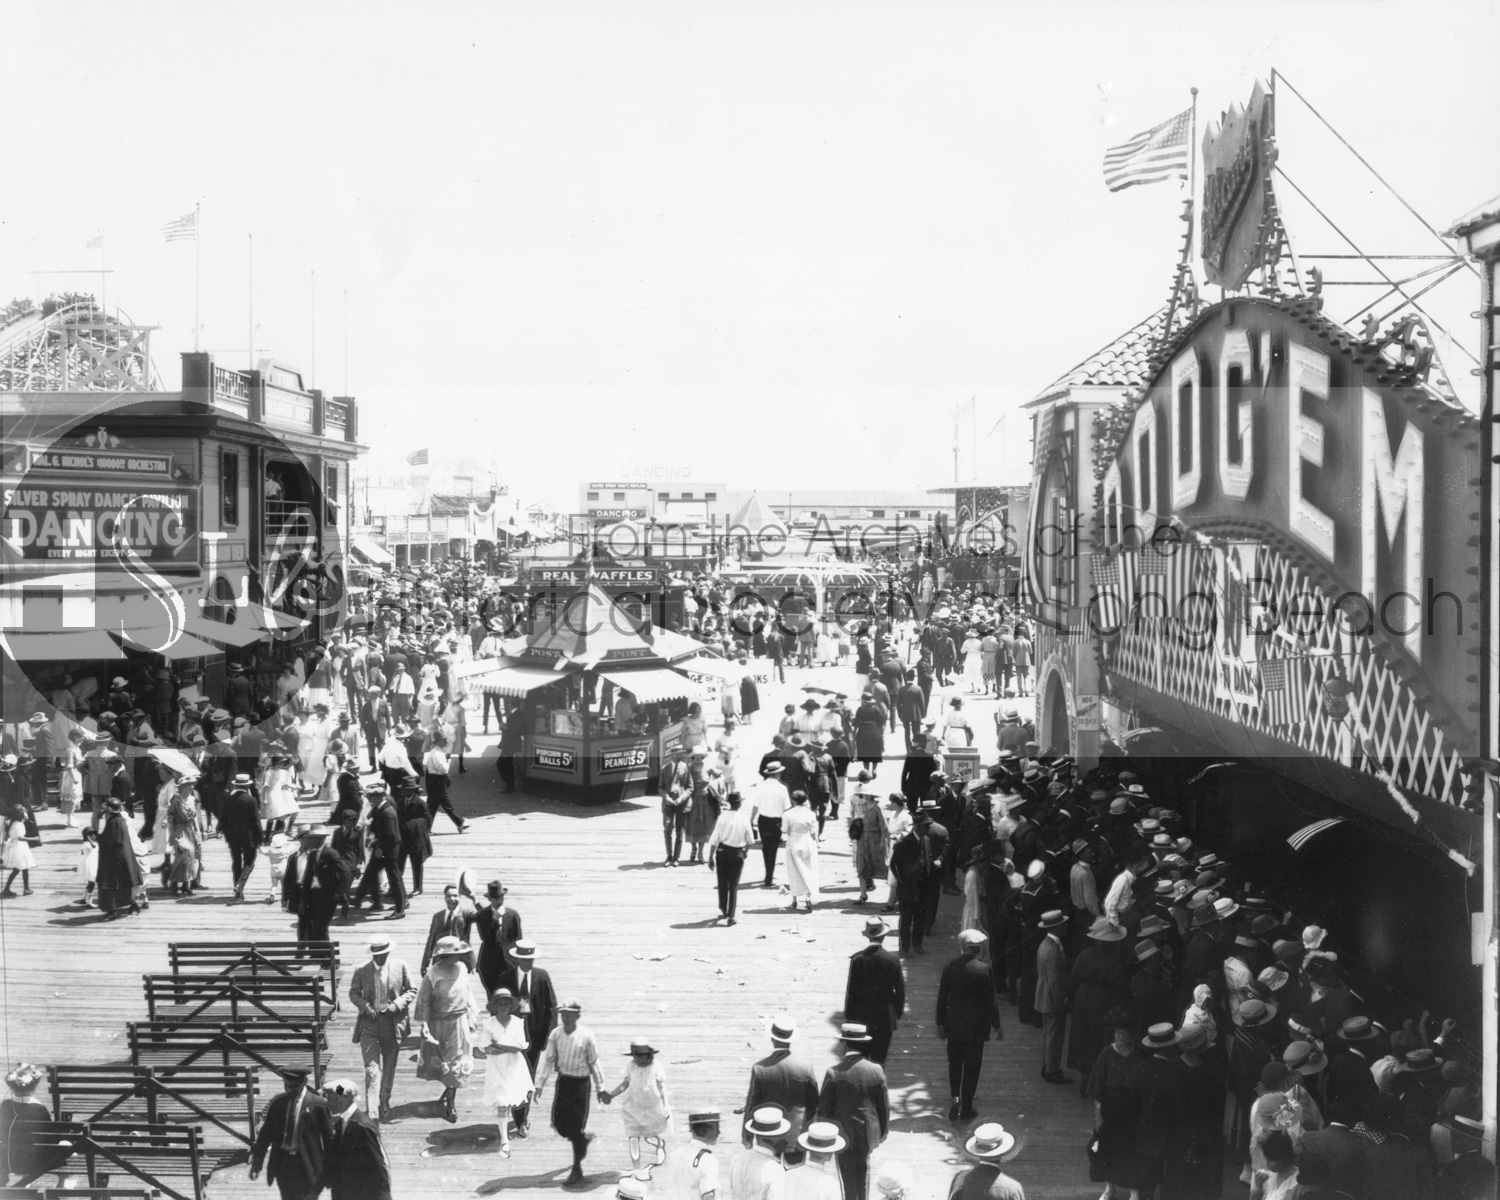 Long beach historical event black and white photograph